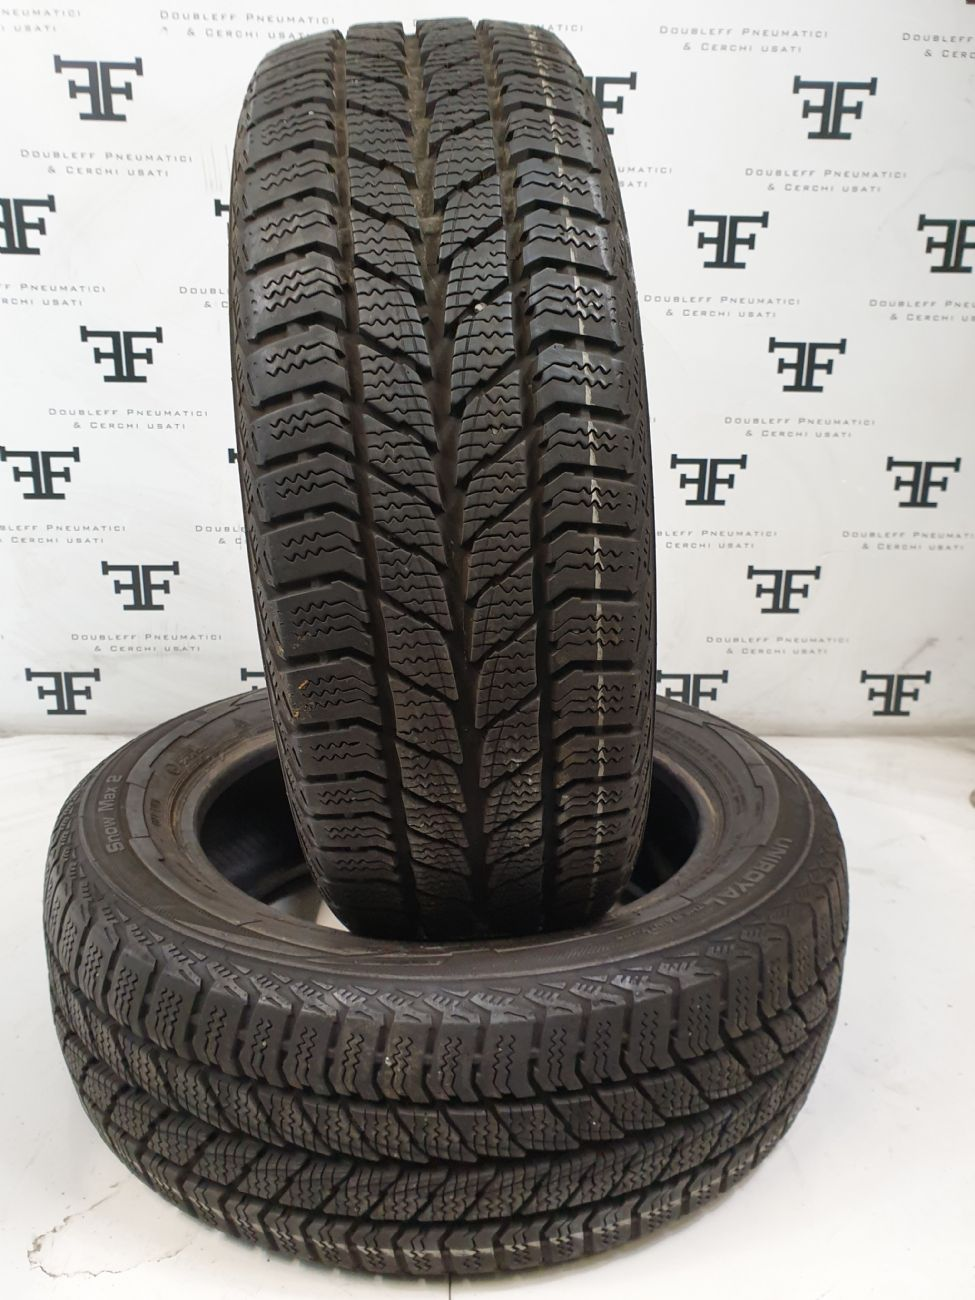 195/60 R16C 99/97 T UNIROYAL SNOW MAX 2 DEMONTE